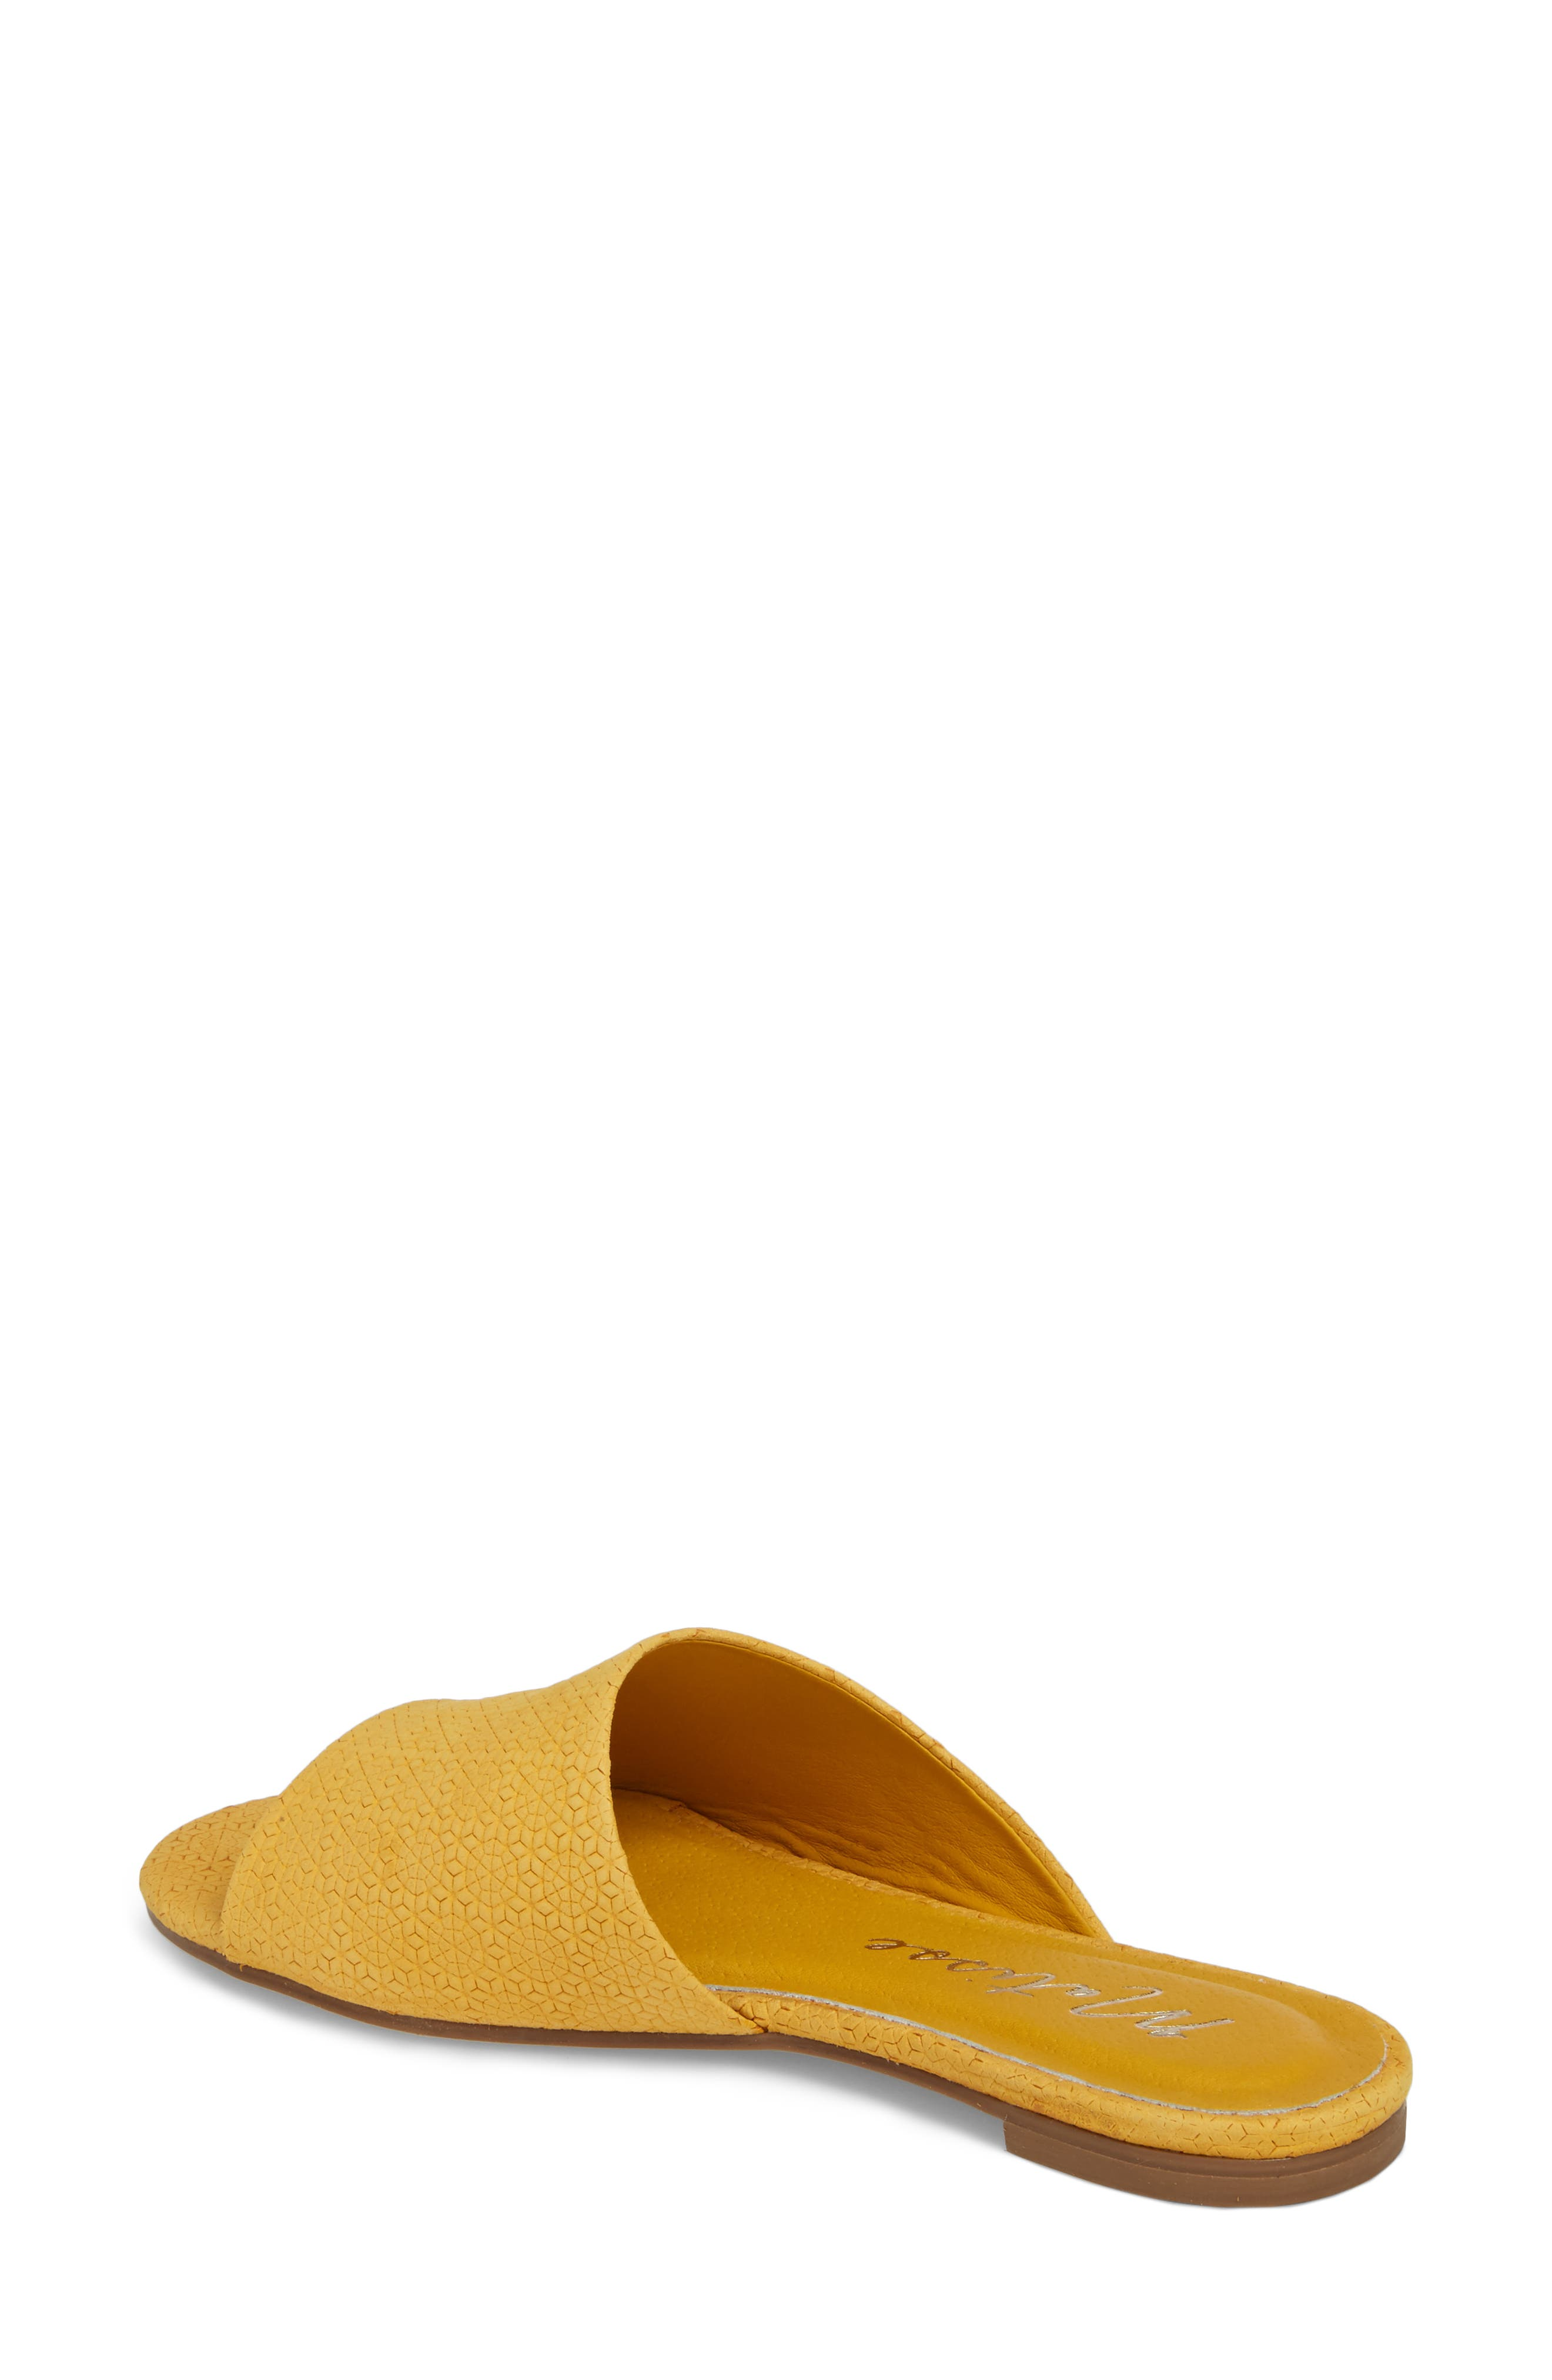 Lira Sandal,                             Alternate thumbnail 2, color,                             MANGO LEATHER